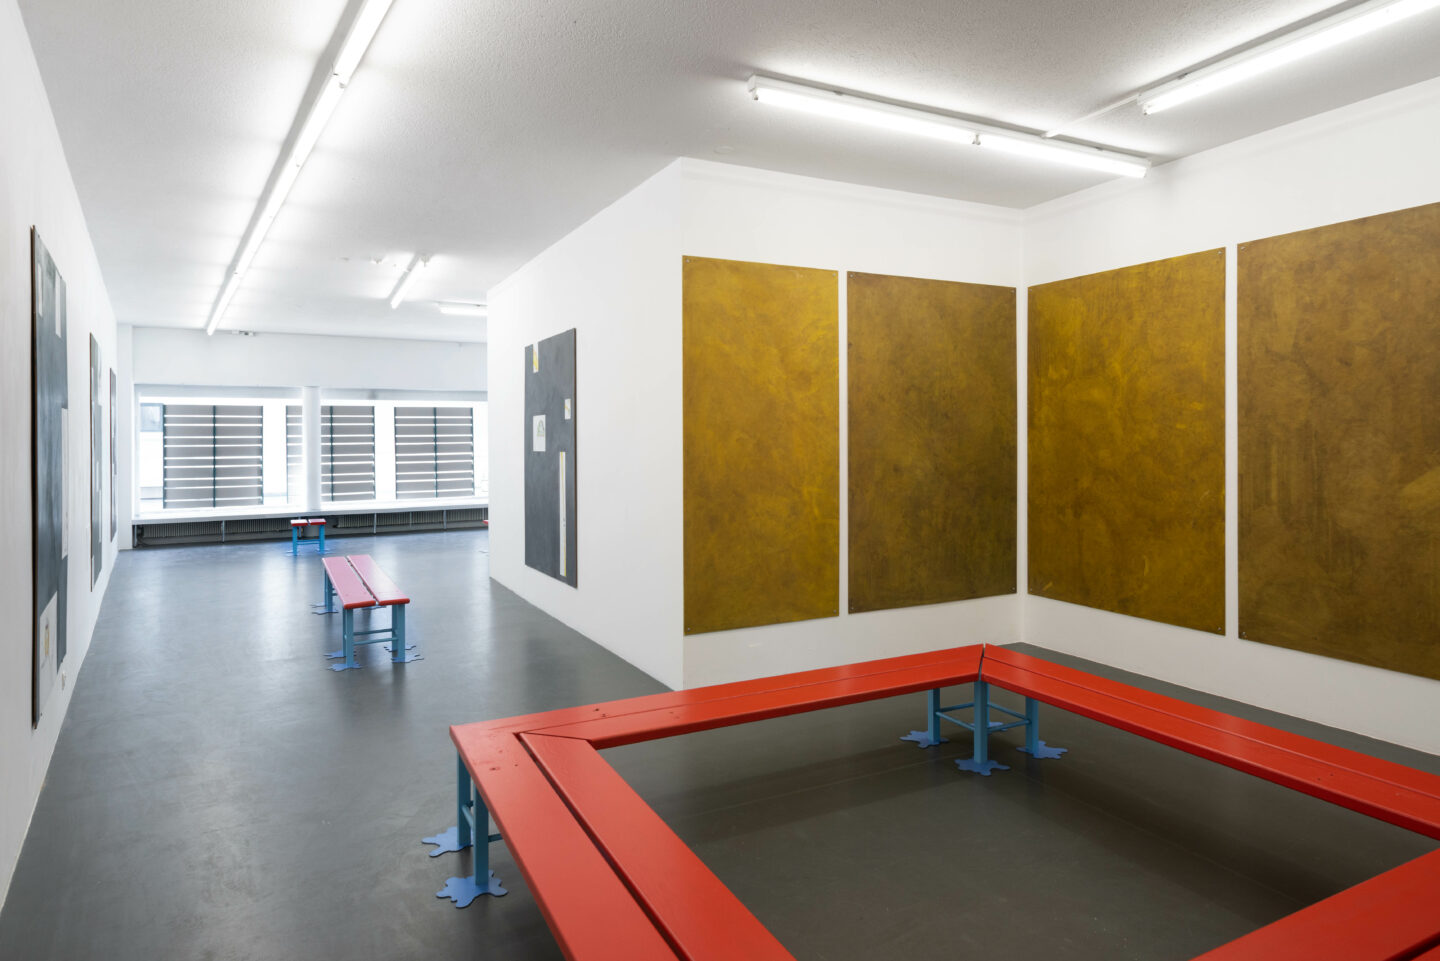 Exhibition View Timothée Calame and Alan Schmalz Soloshow «Affinities» at Weiss Falk, Basel, 2019 / Photo: Flavio Karrer / Courtesy: the artists and Weiss Falk